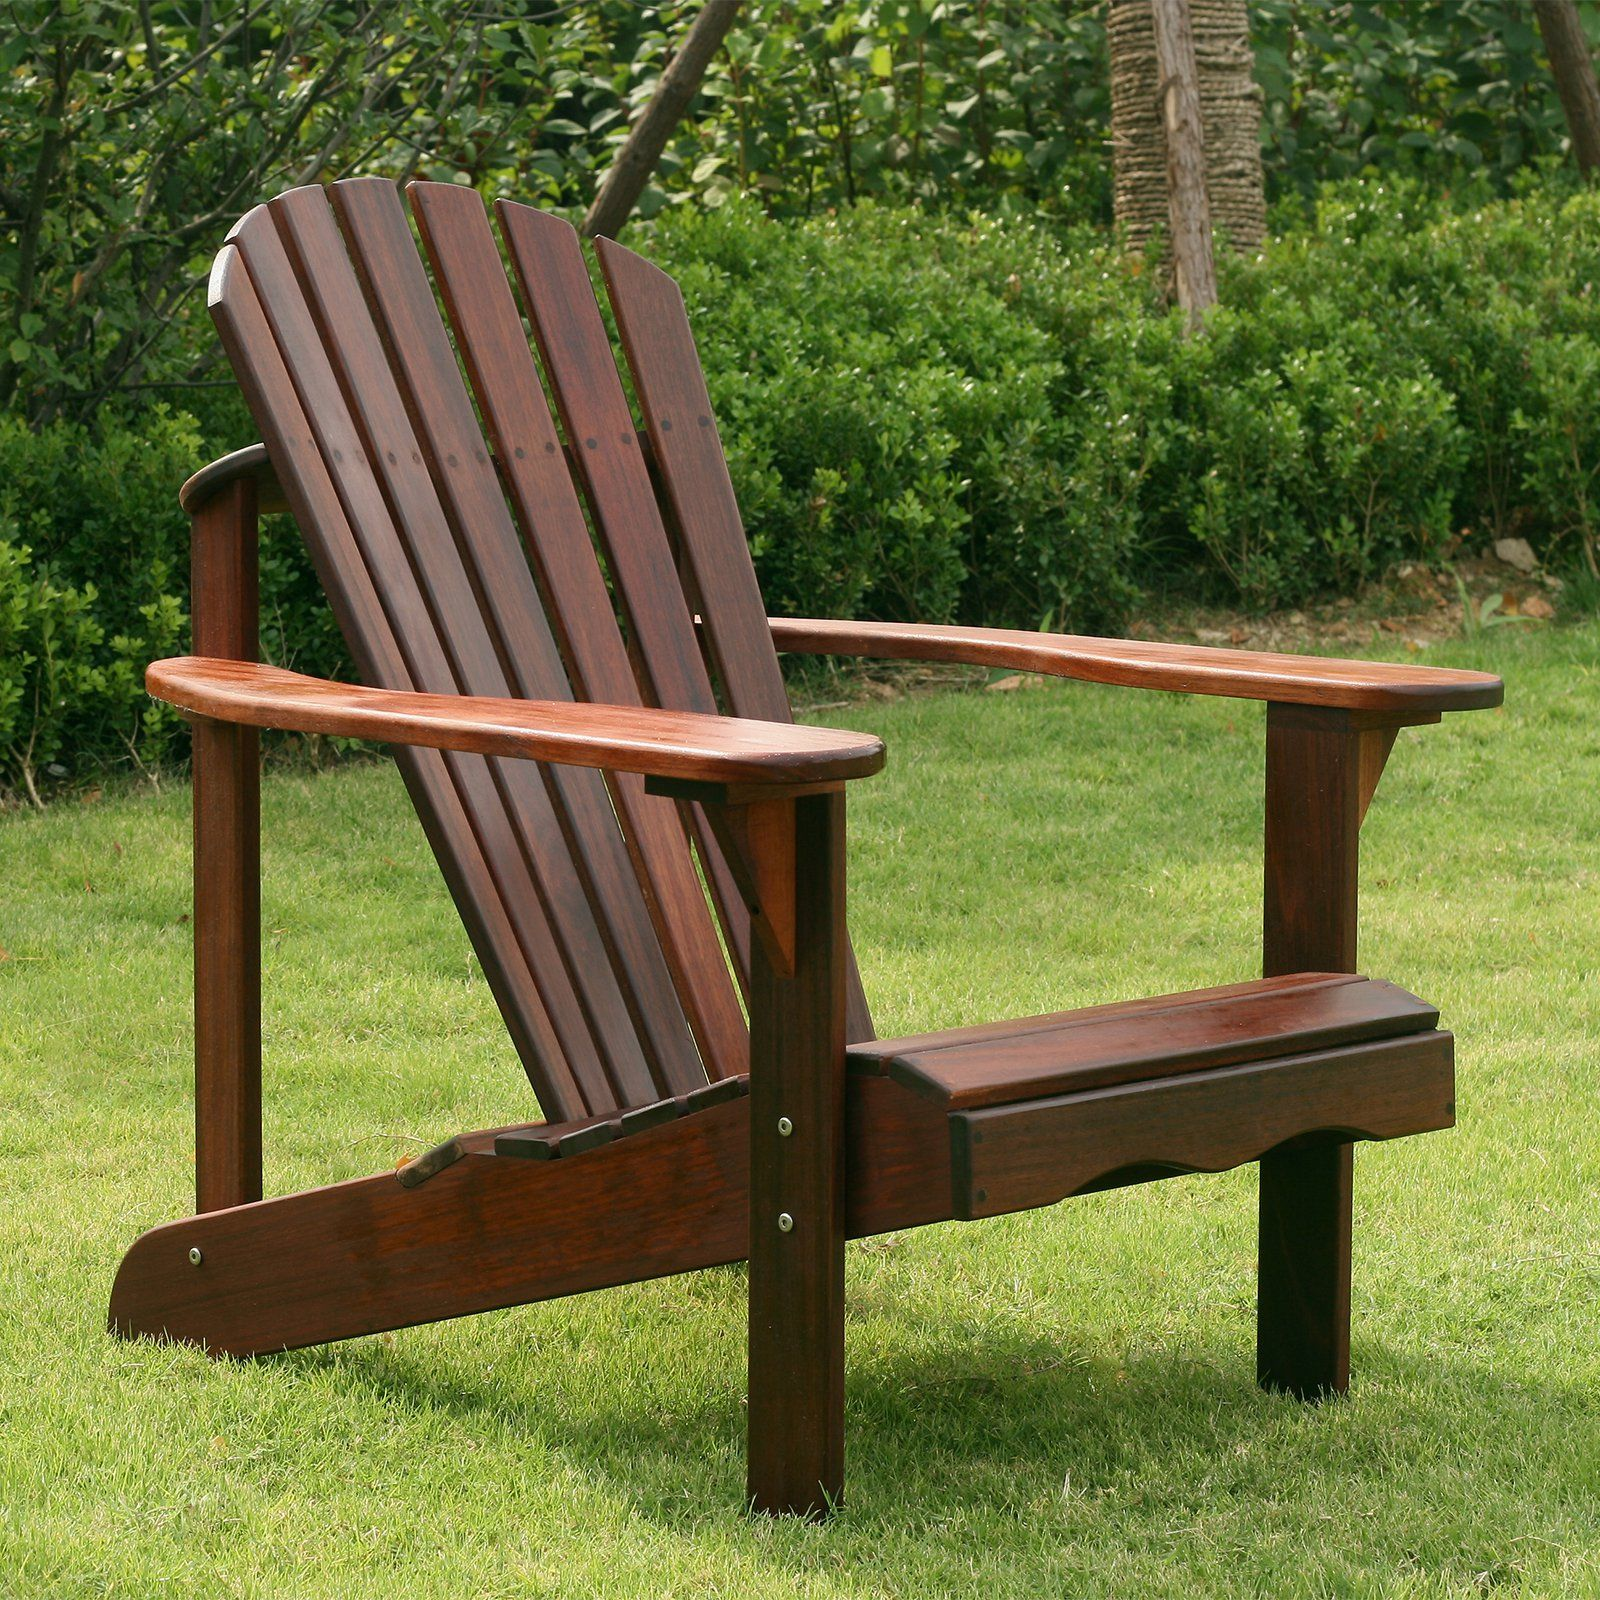 furniture stow away and adirondack market xxx world outdoor wood category with chairs ottoman do chair